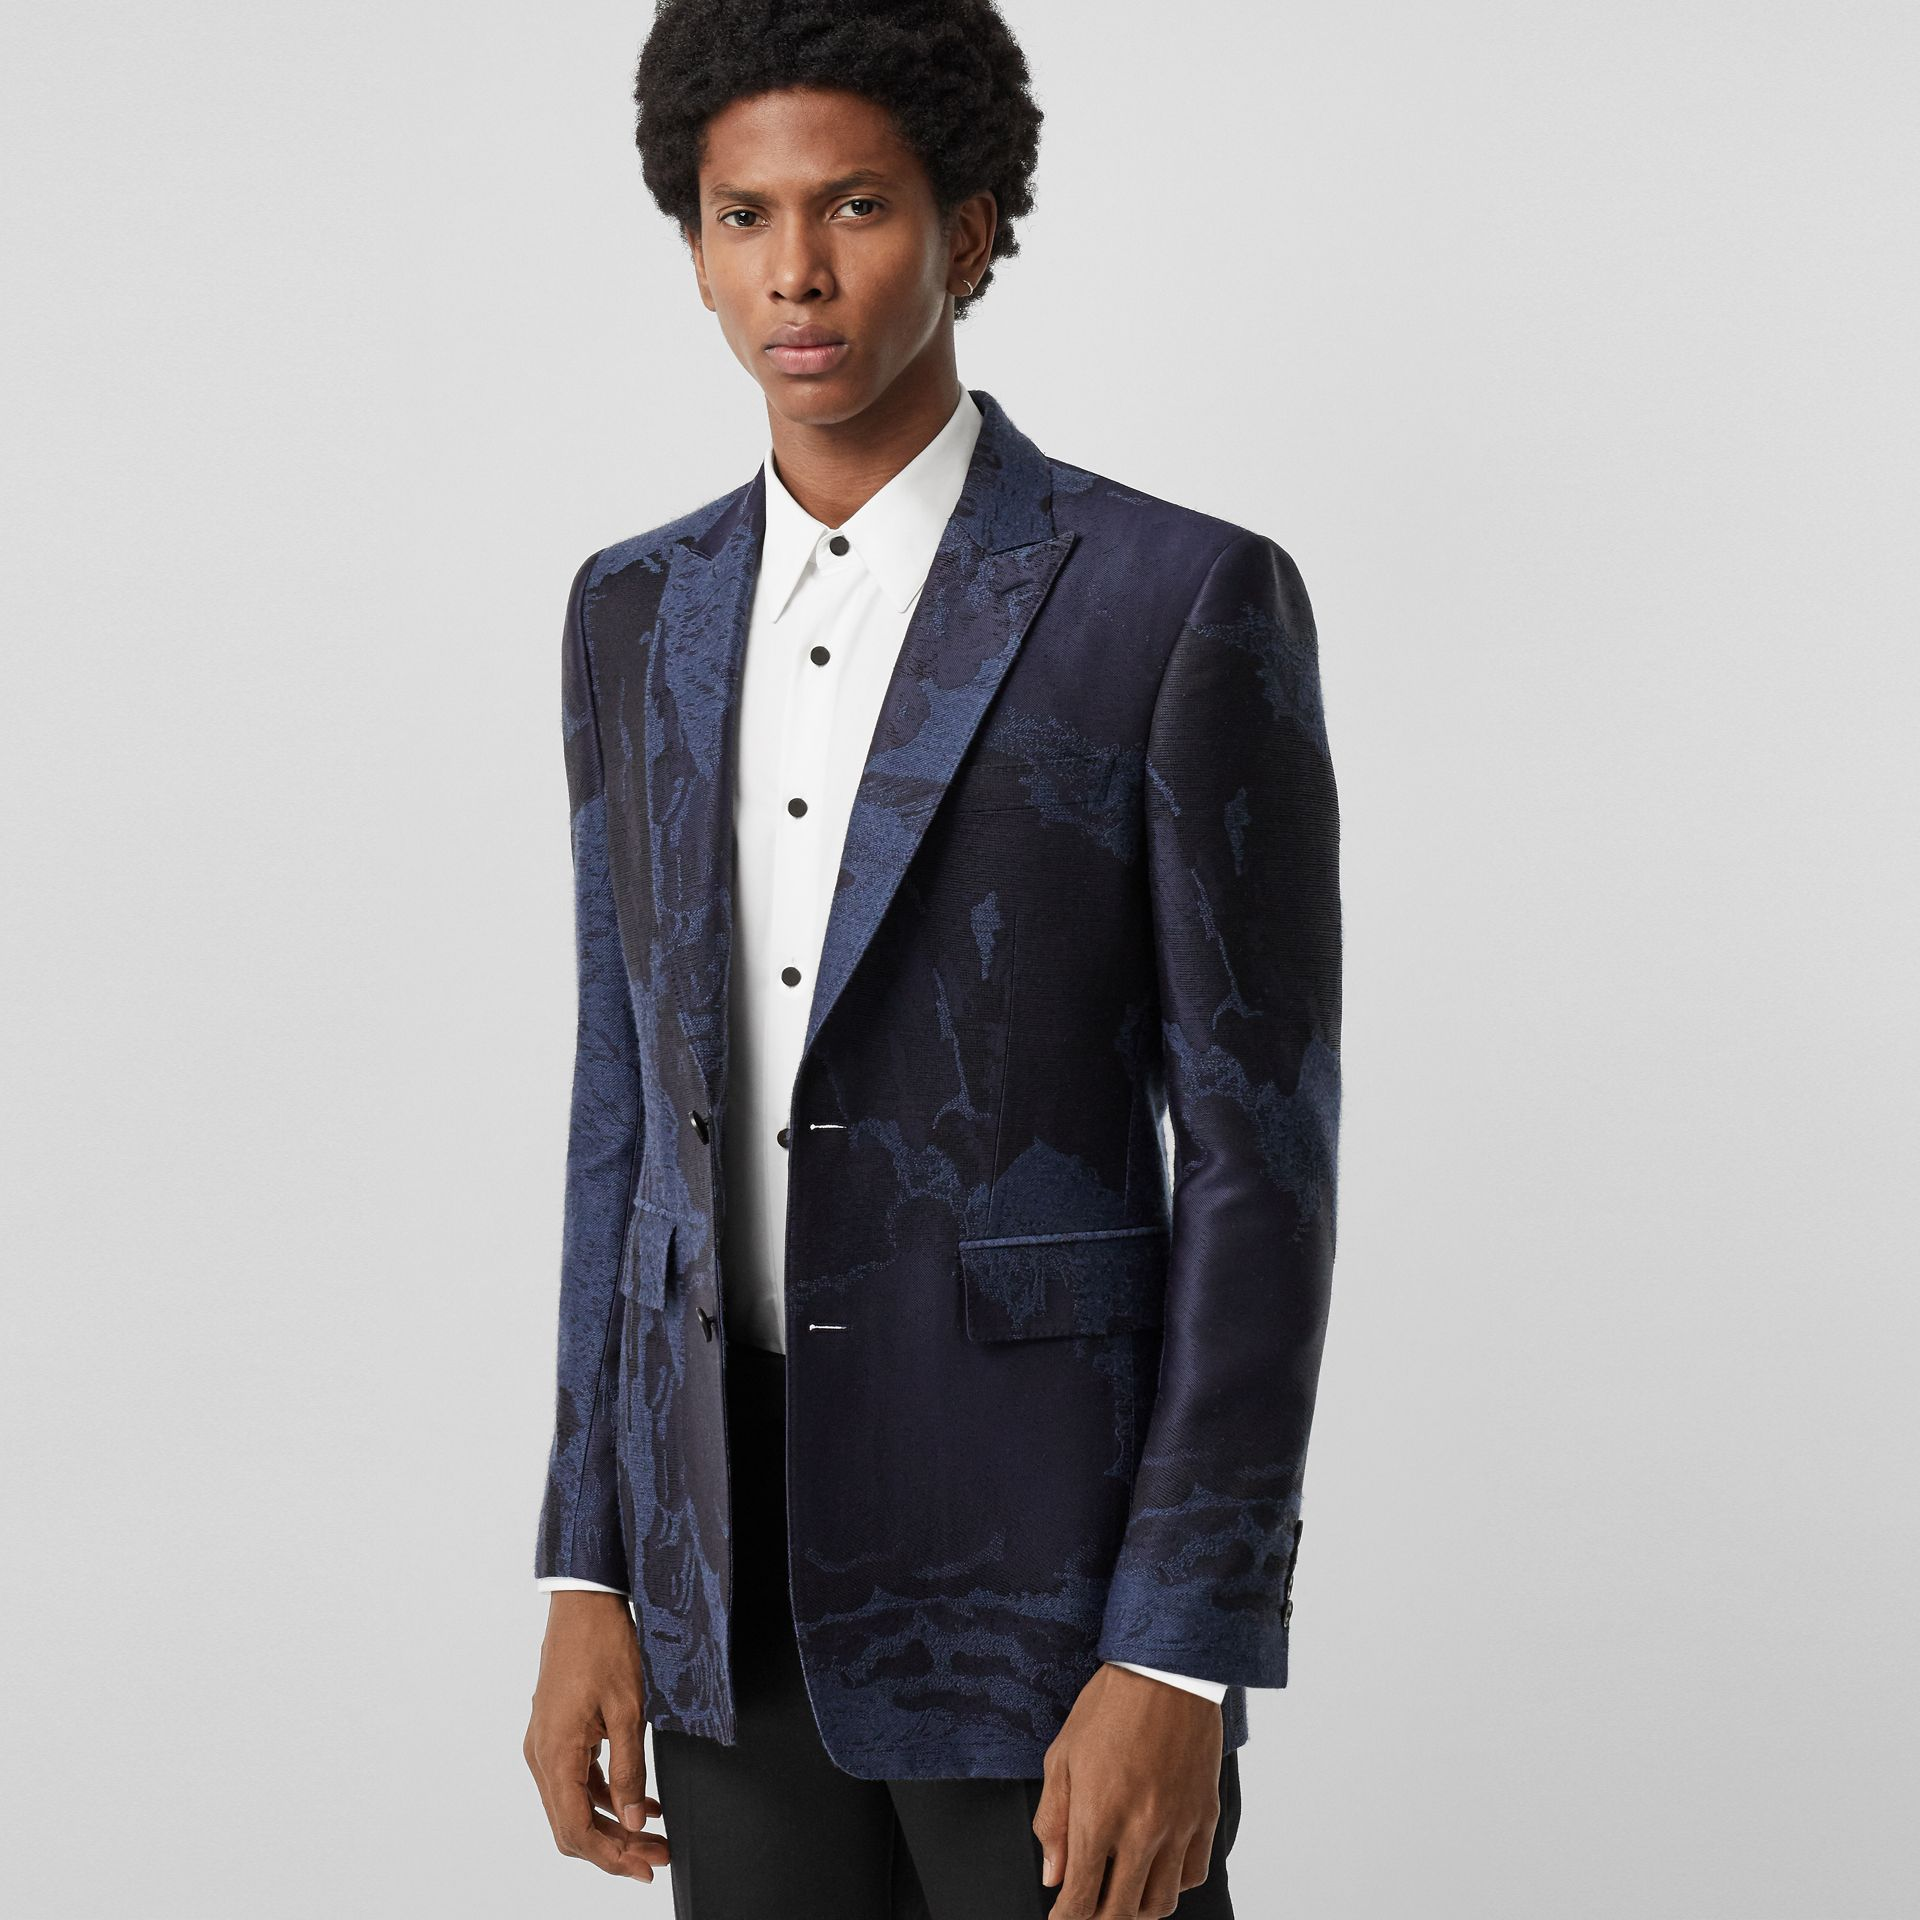 Classic Fit Dreamscape Wool Blend Tailored Jacket in Midnight Blue - Men | Burberry - gallery image 5